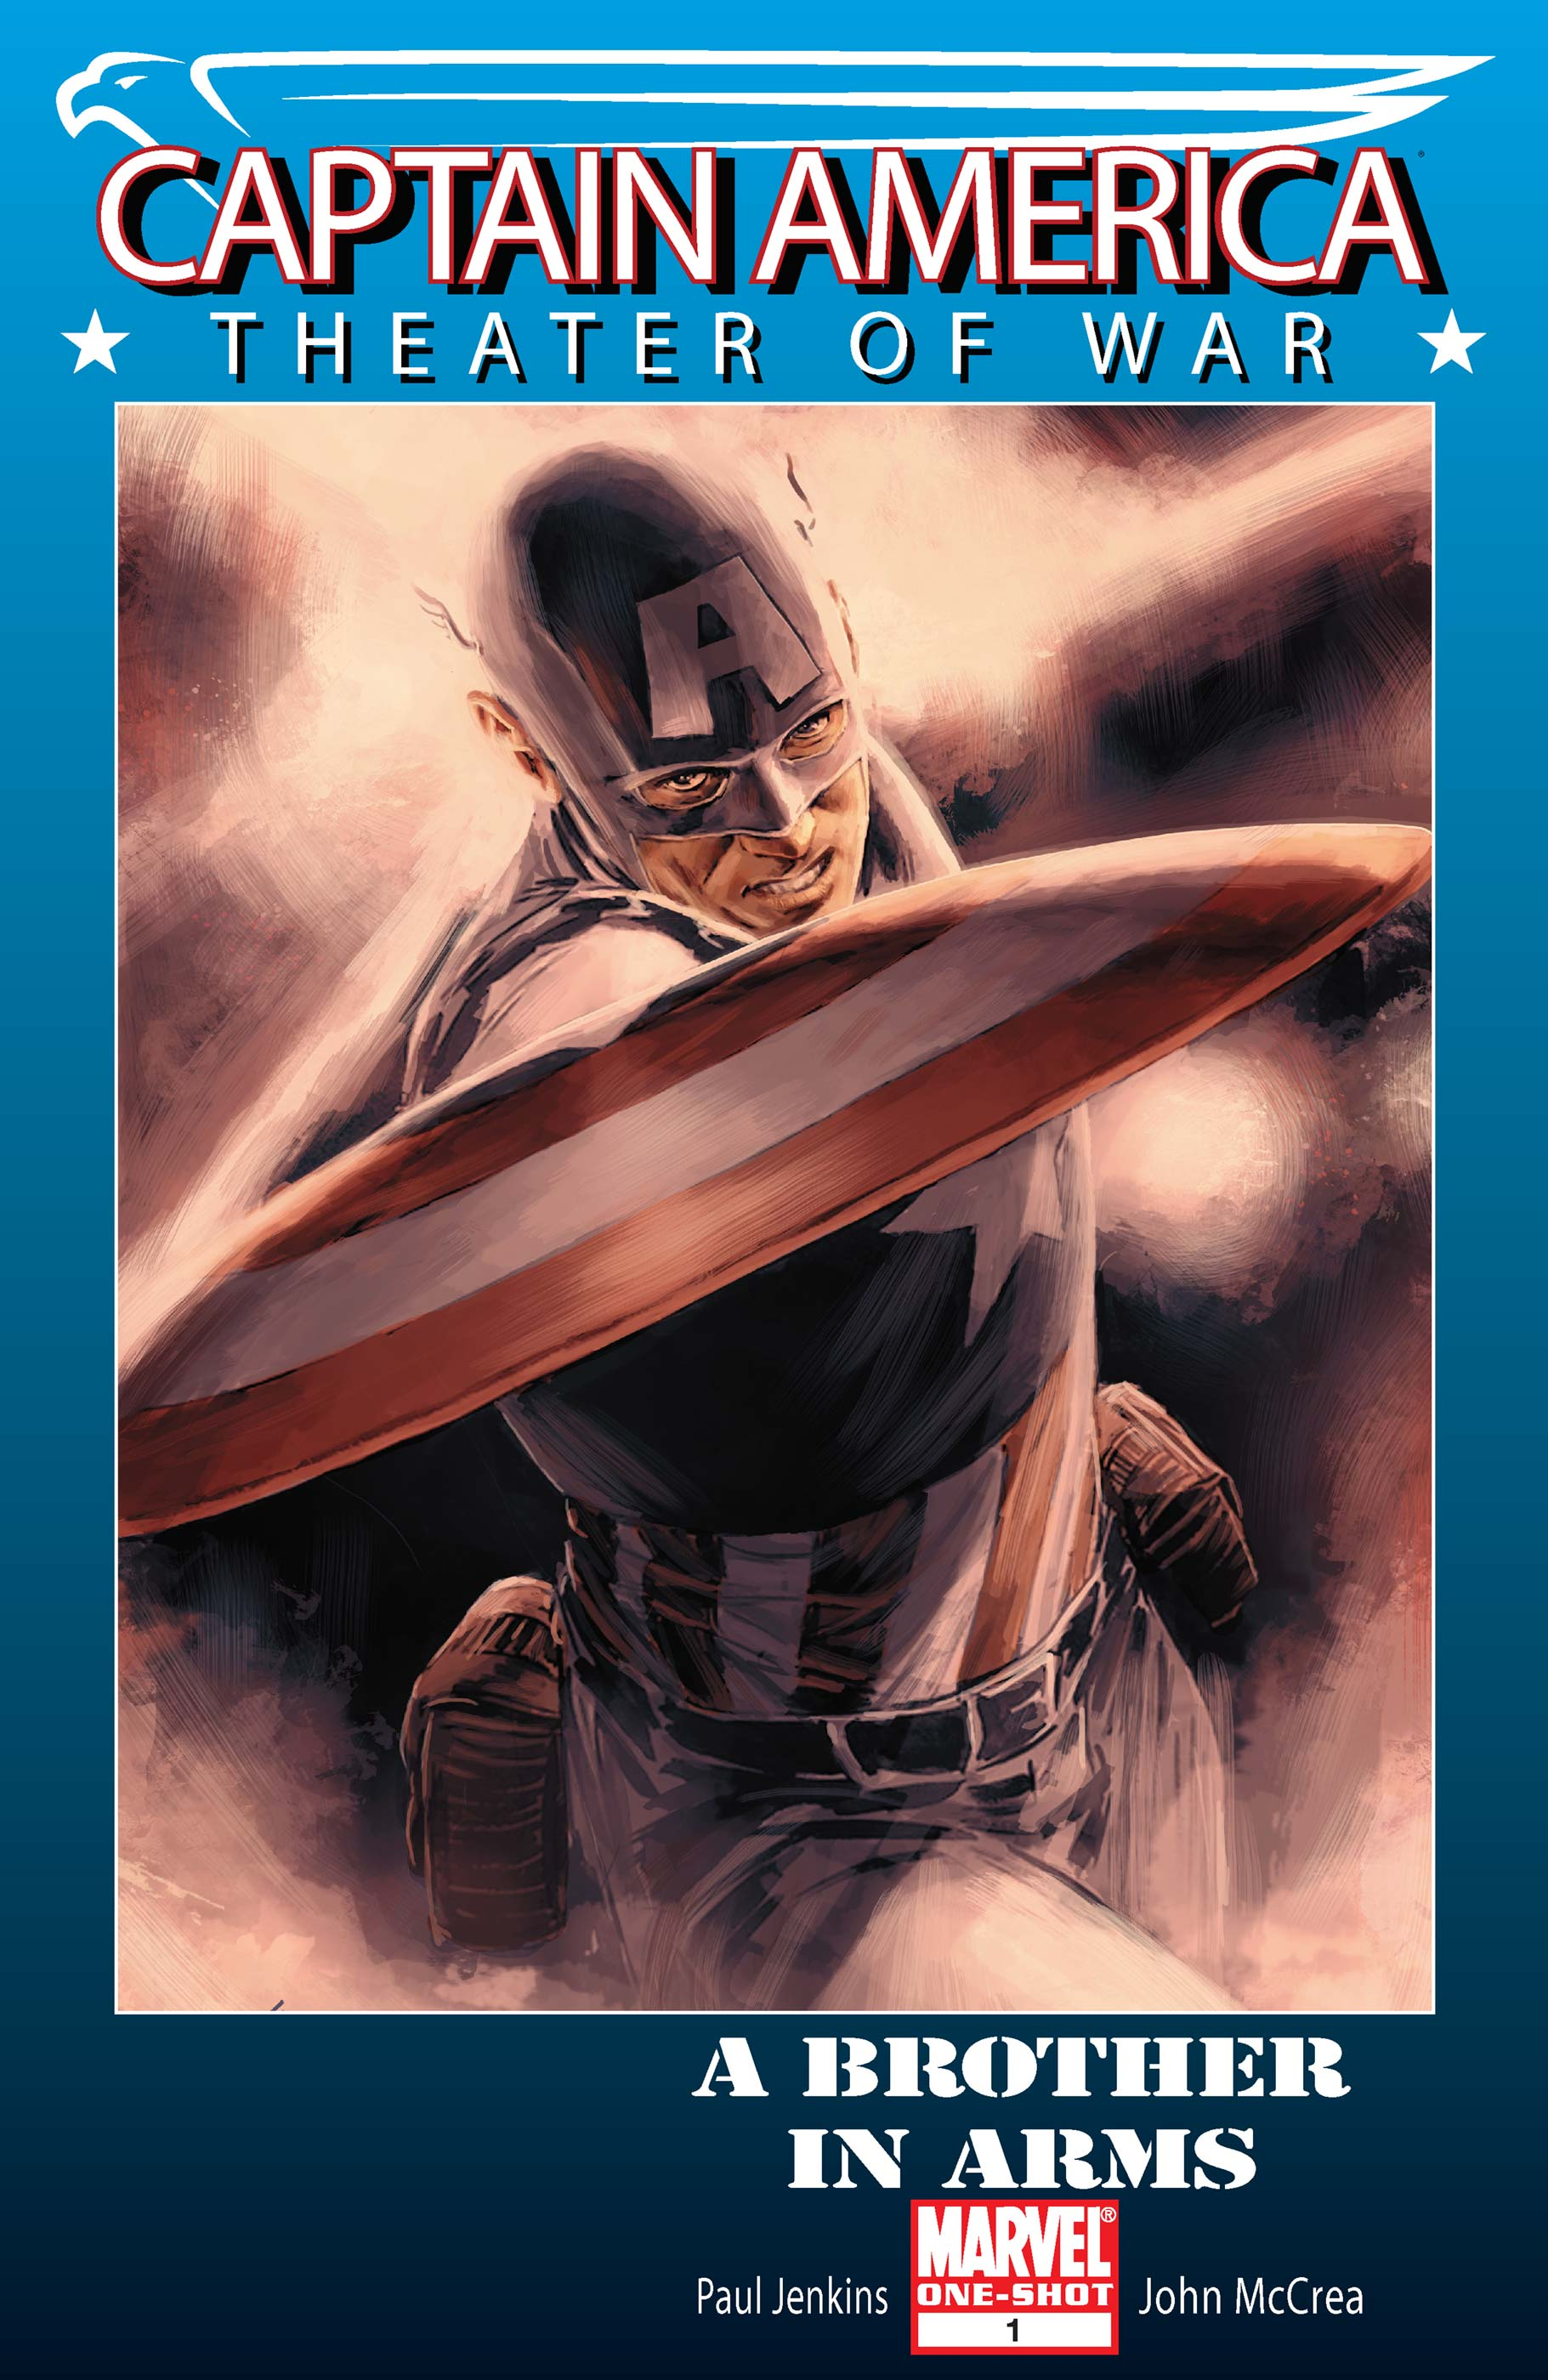 Captain America Theater of War: A Brother in Arms (2009) #1